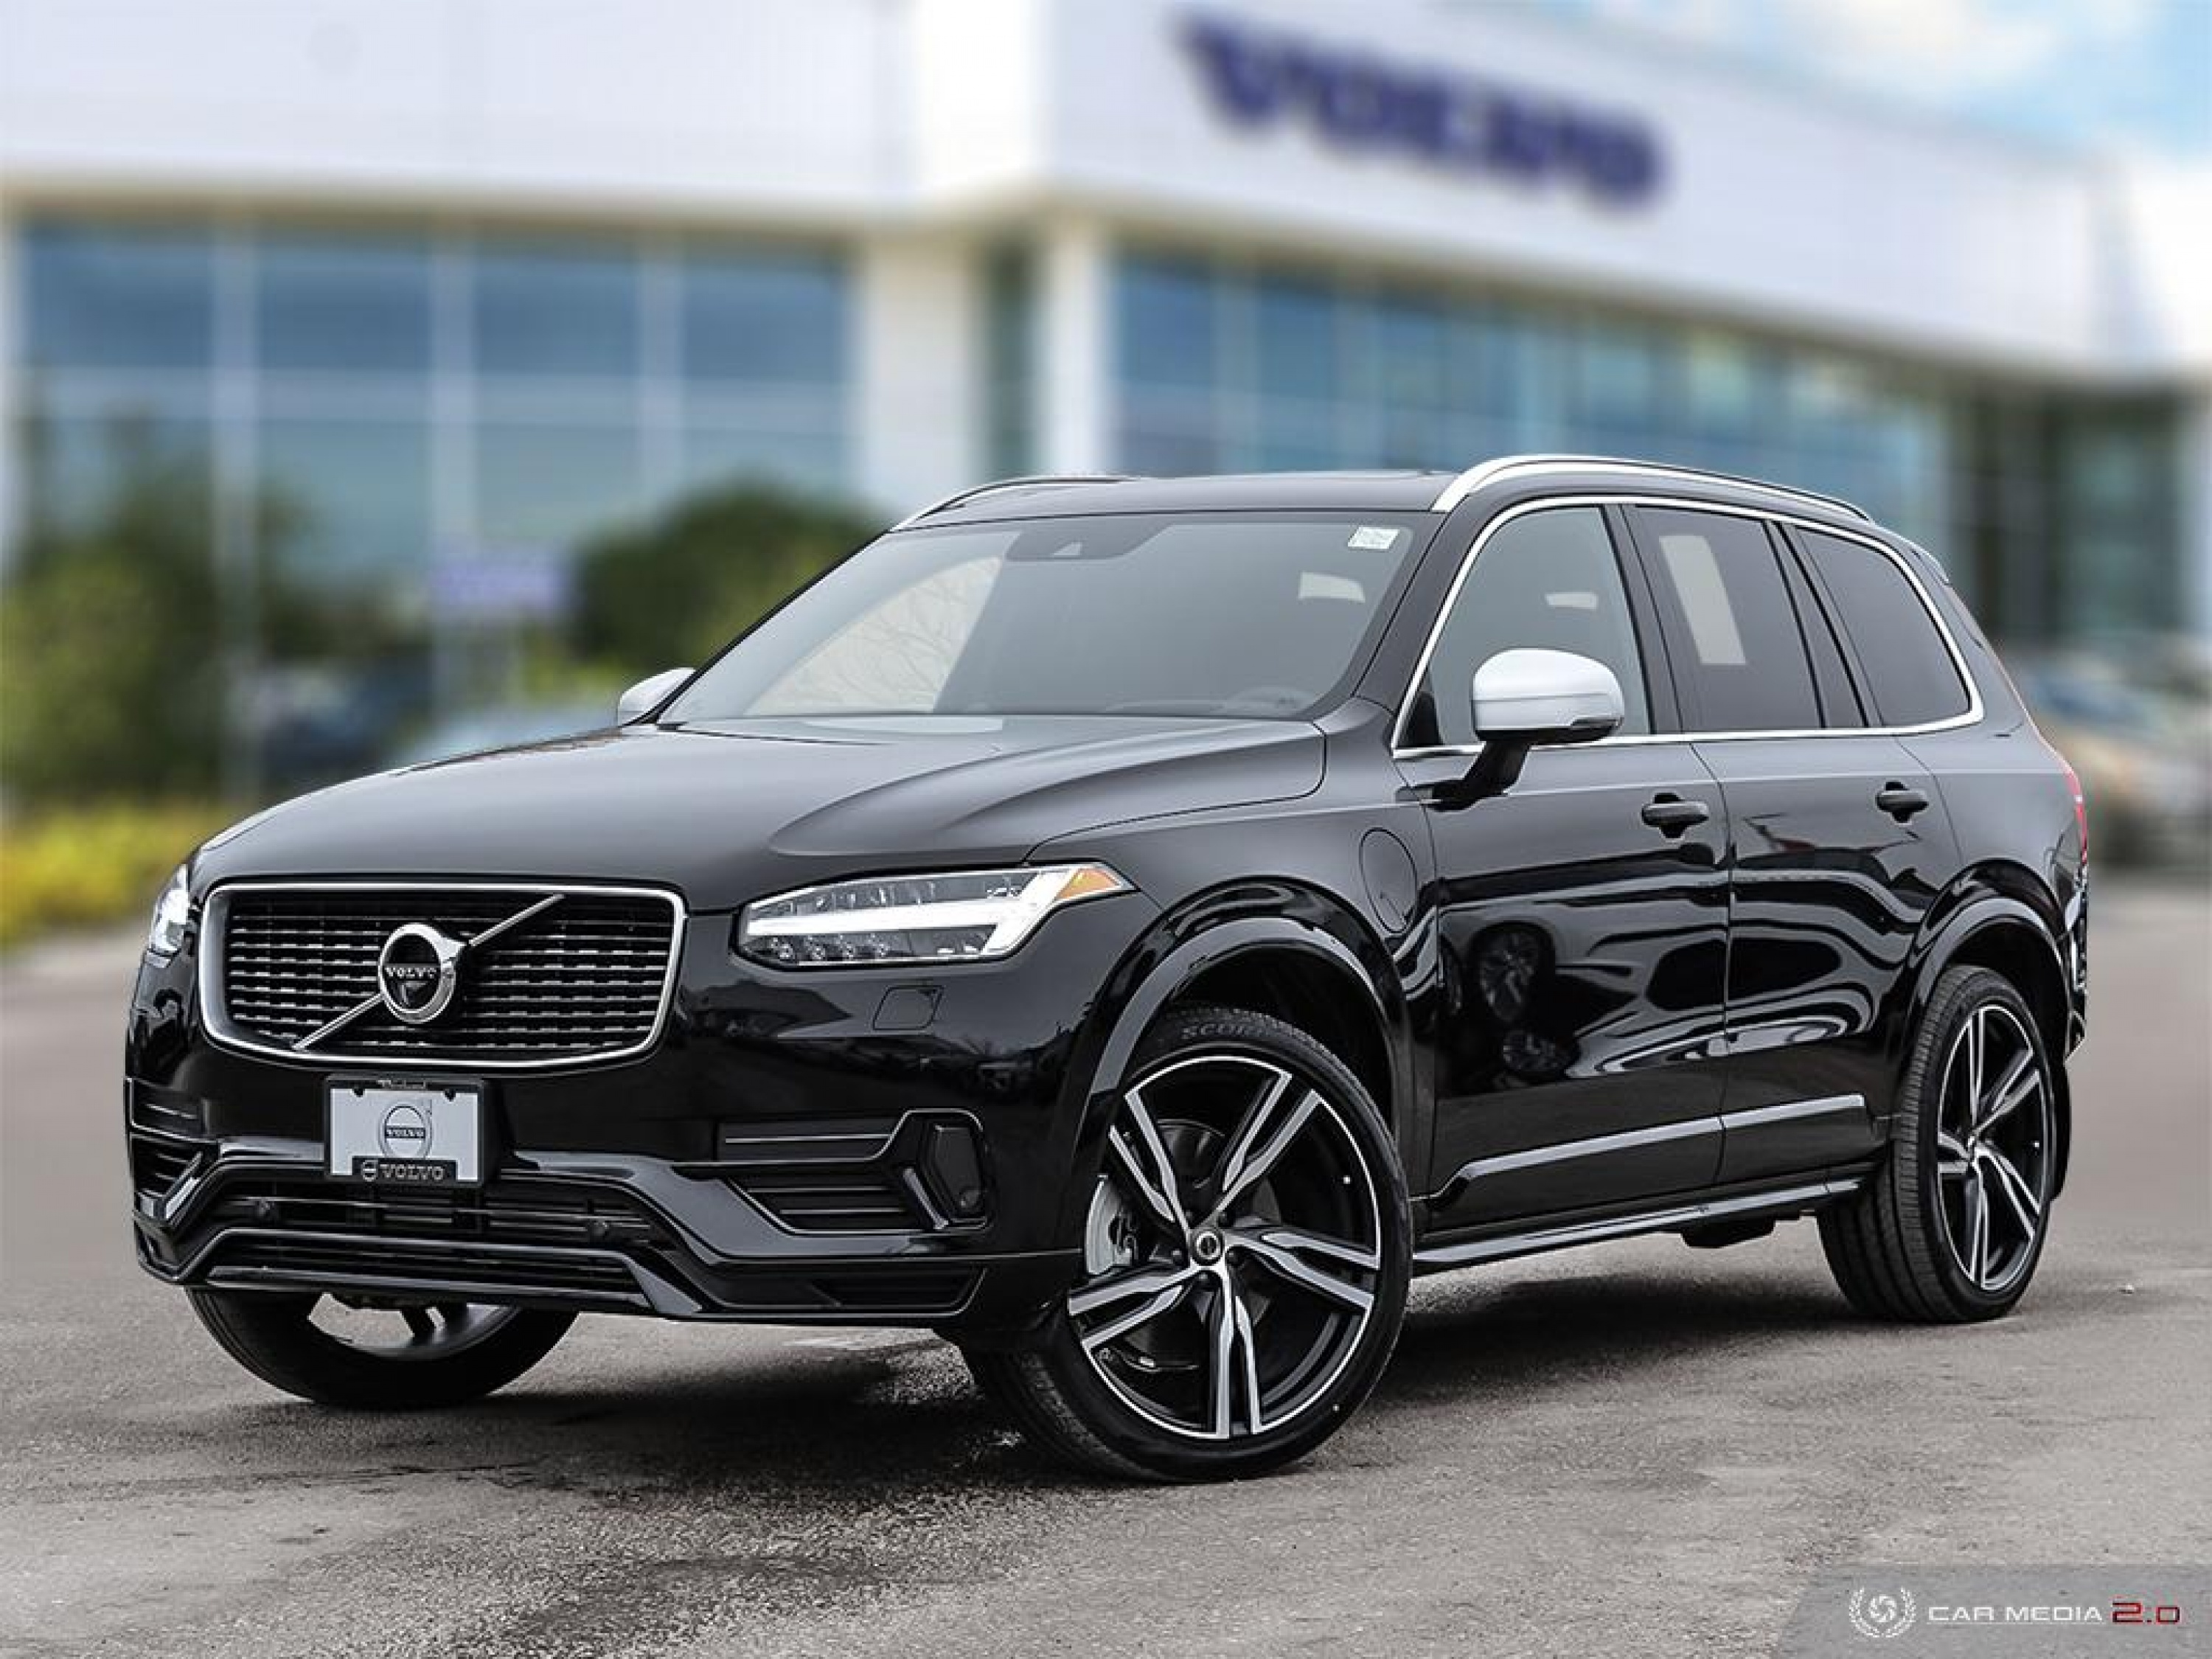 Volvo XC90 exterior restyling